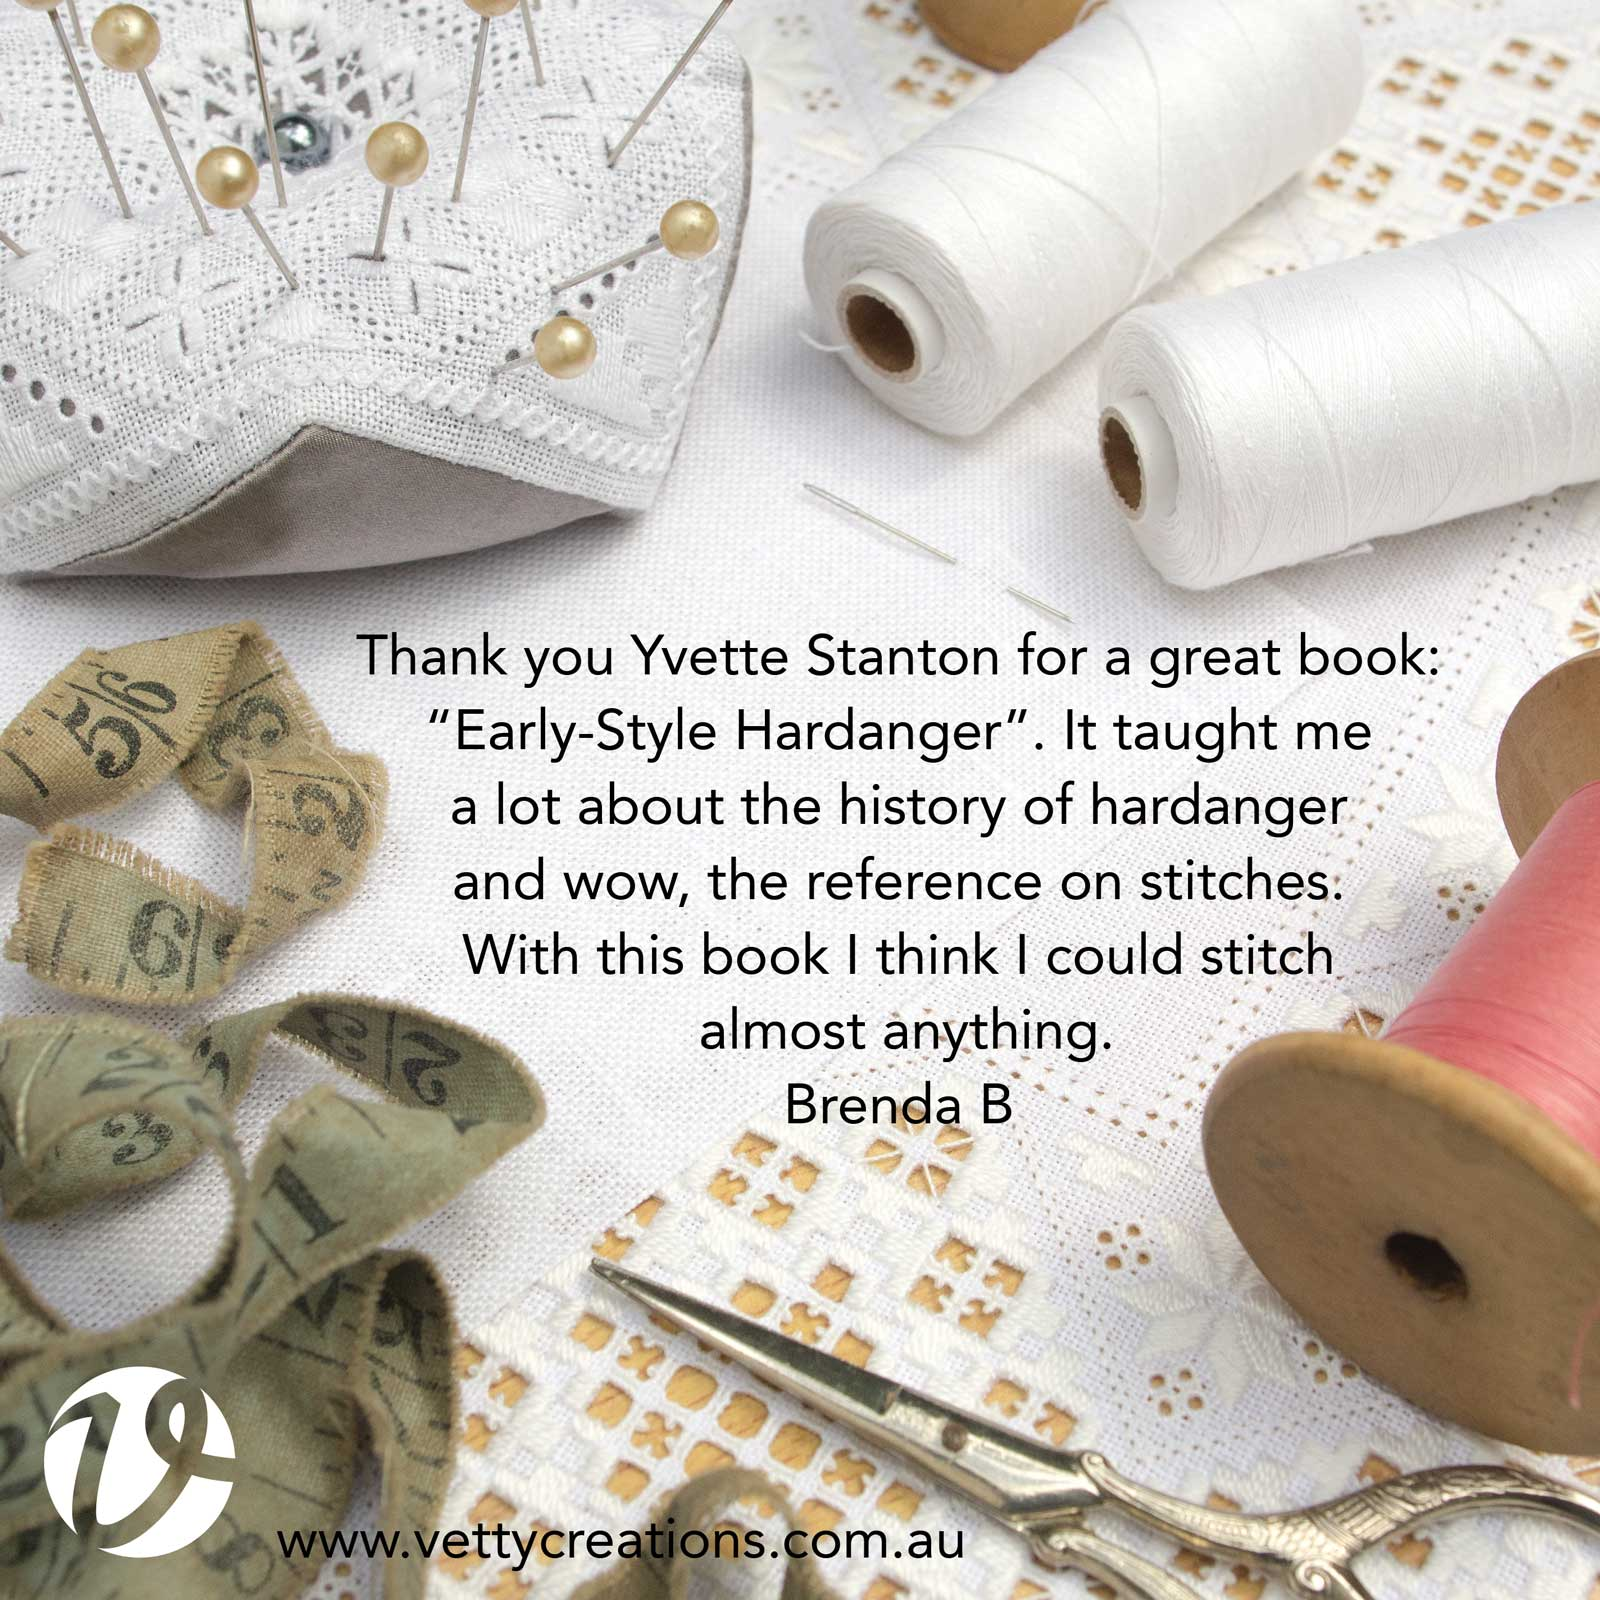 Thank you Yvette Stanton for a great book, Early-Style Hardanger